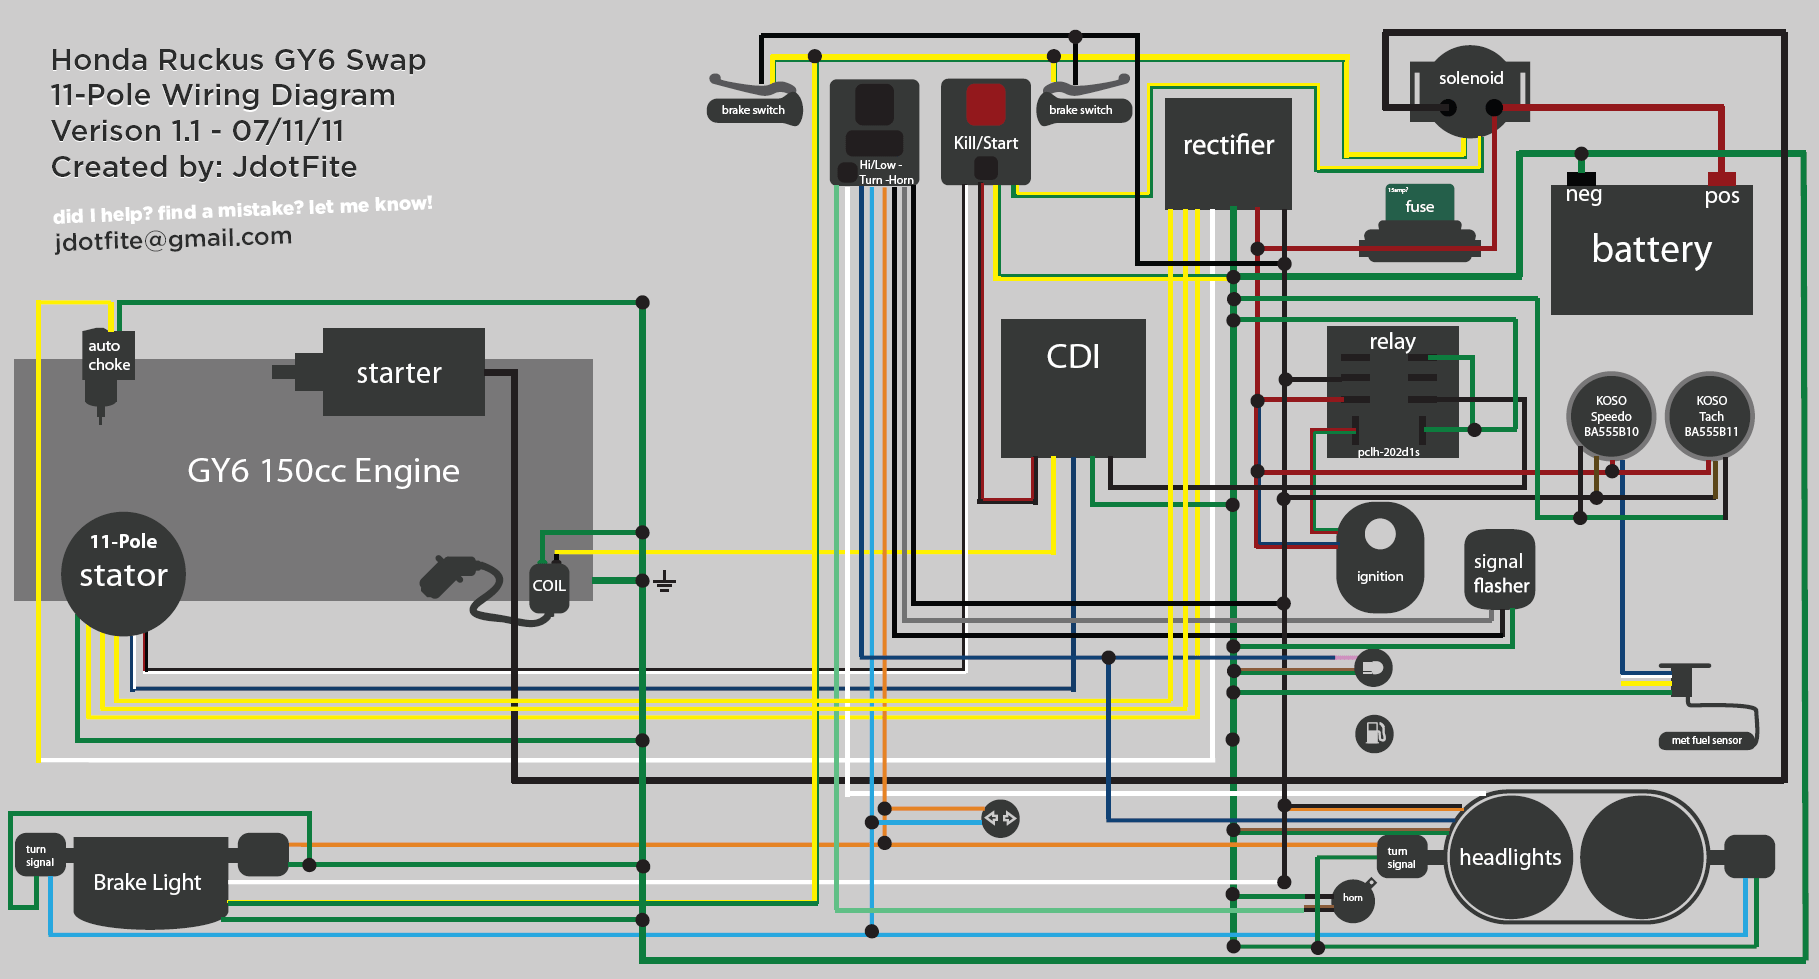 ruckus gy6 wiring diagram gy6 wiring diagram 150cc scooter wiring diagram \u2022 wiring diagrams  at gsmx.co